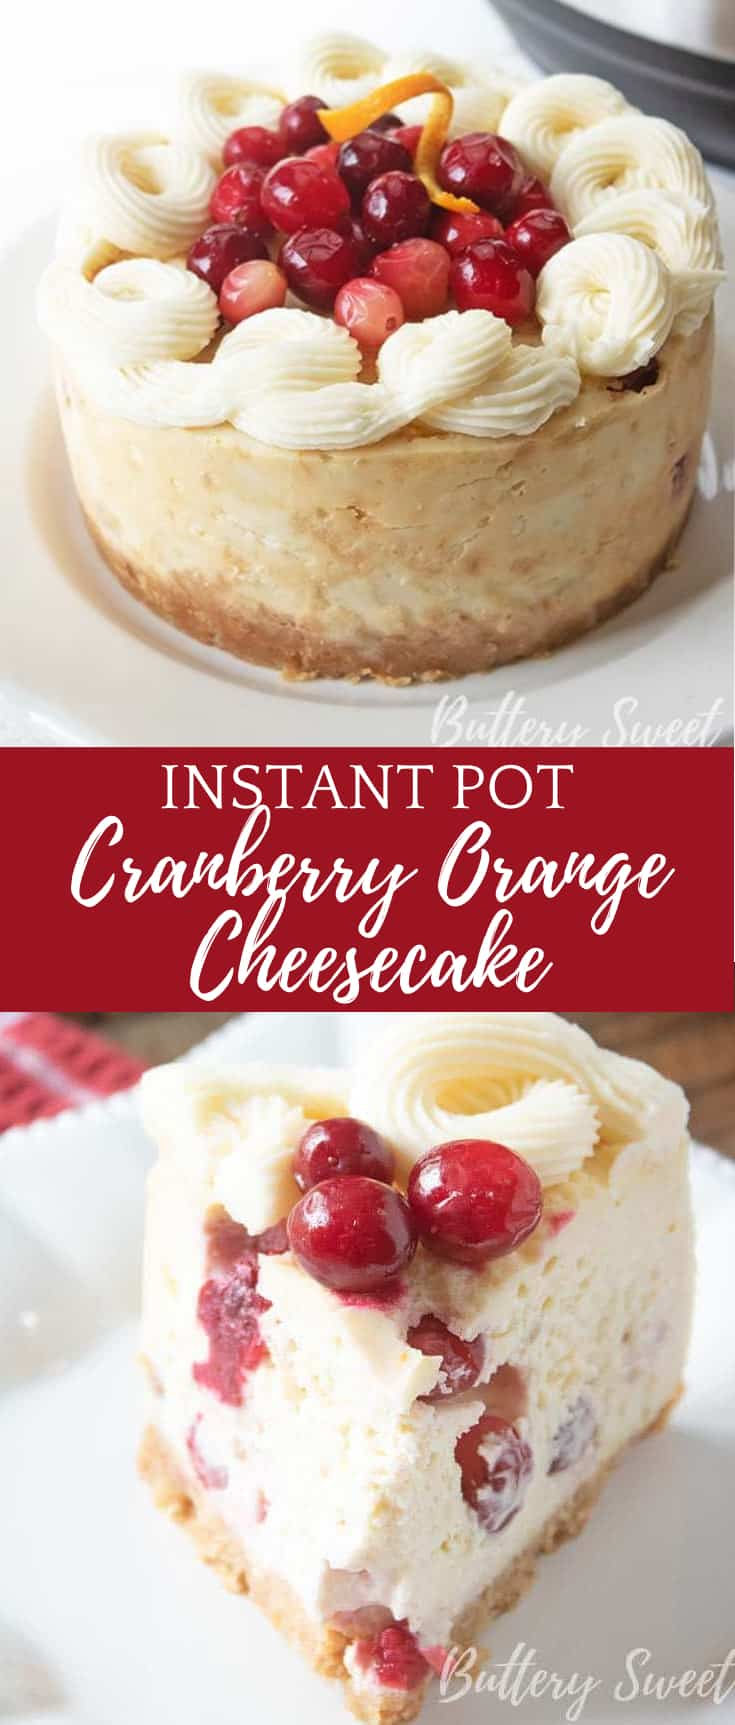 Picture of full cheesecake, text block Instant Pot Cranberry Orange Cheesecake, and slice of cheesecake